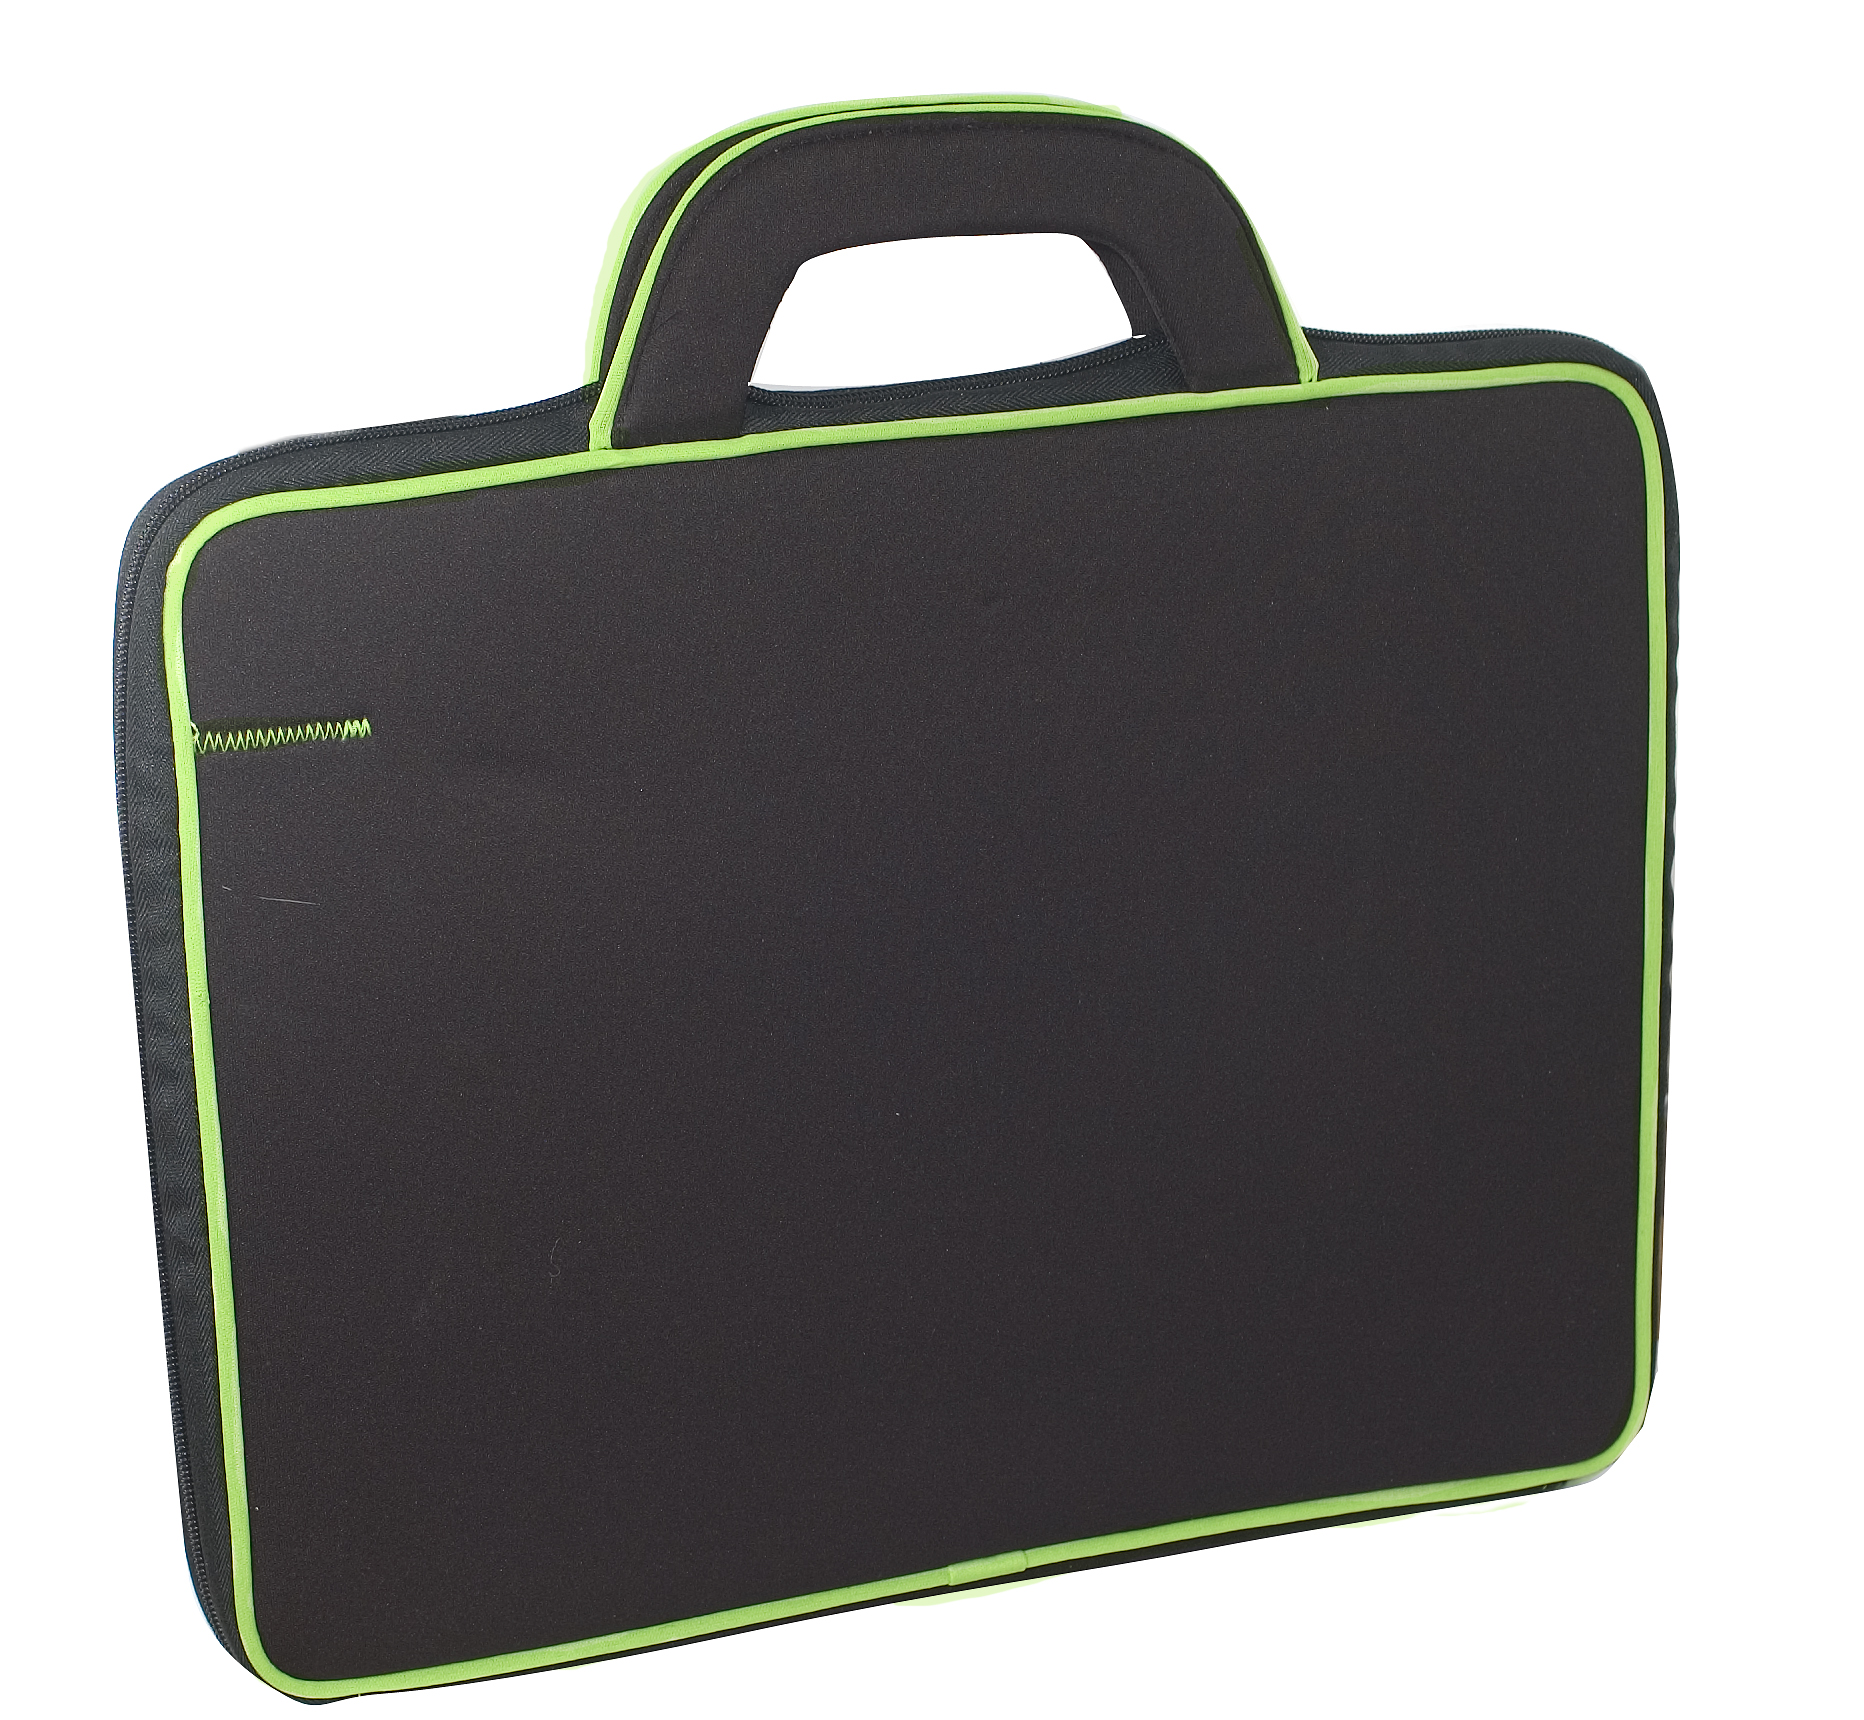 Luxury Laptop Sleeve / Case for Laptops Fits upto 16